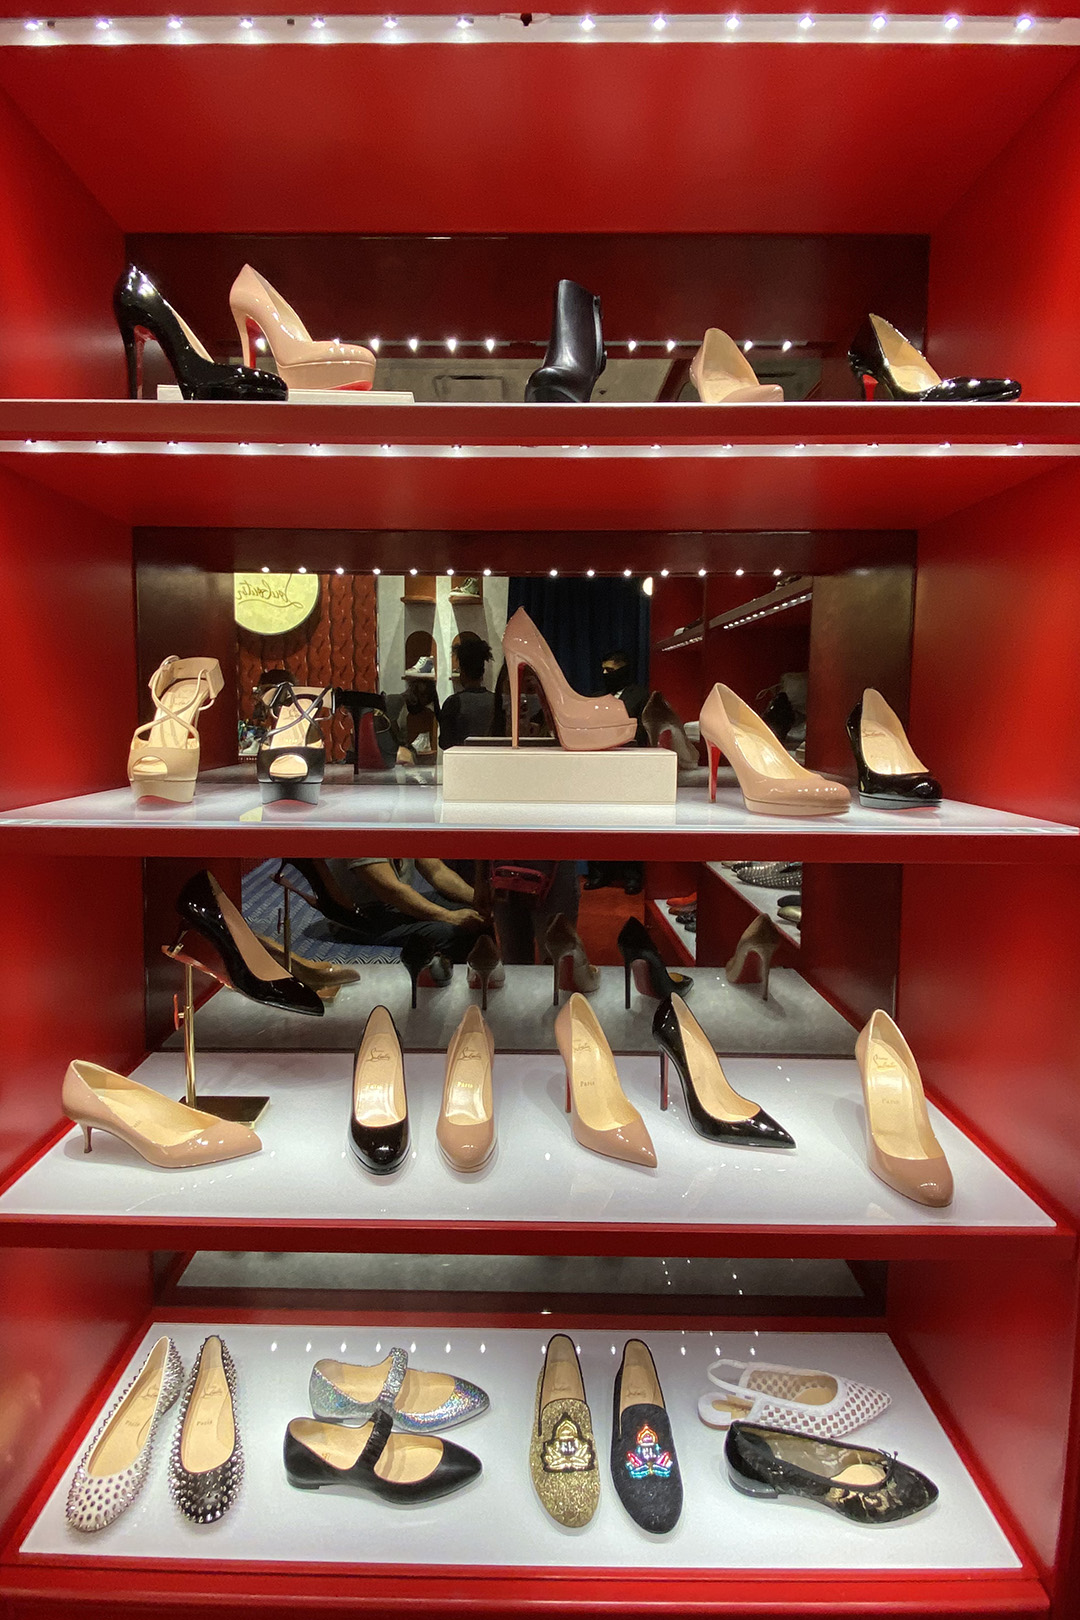 Classic Christian Louboutin Shoes at the Outlets (The Luxury Lowdown Blog)